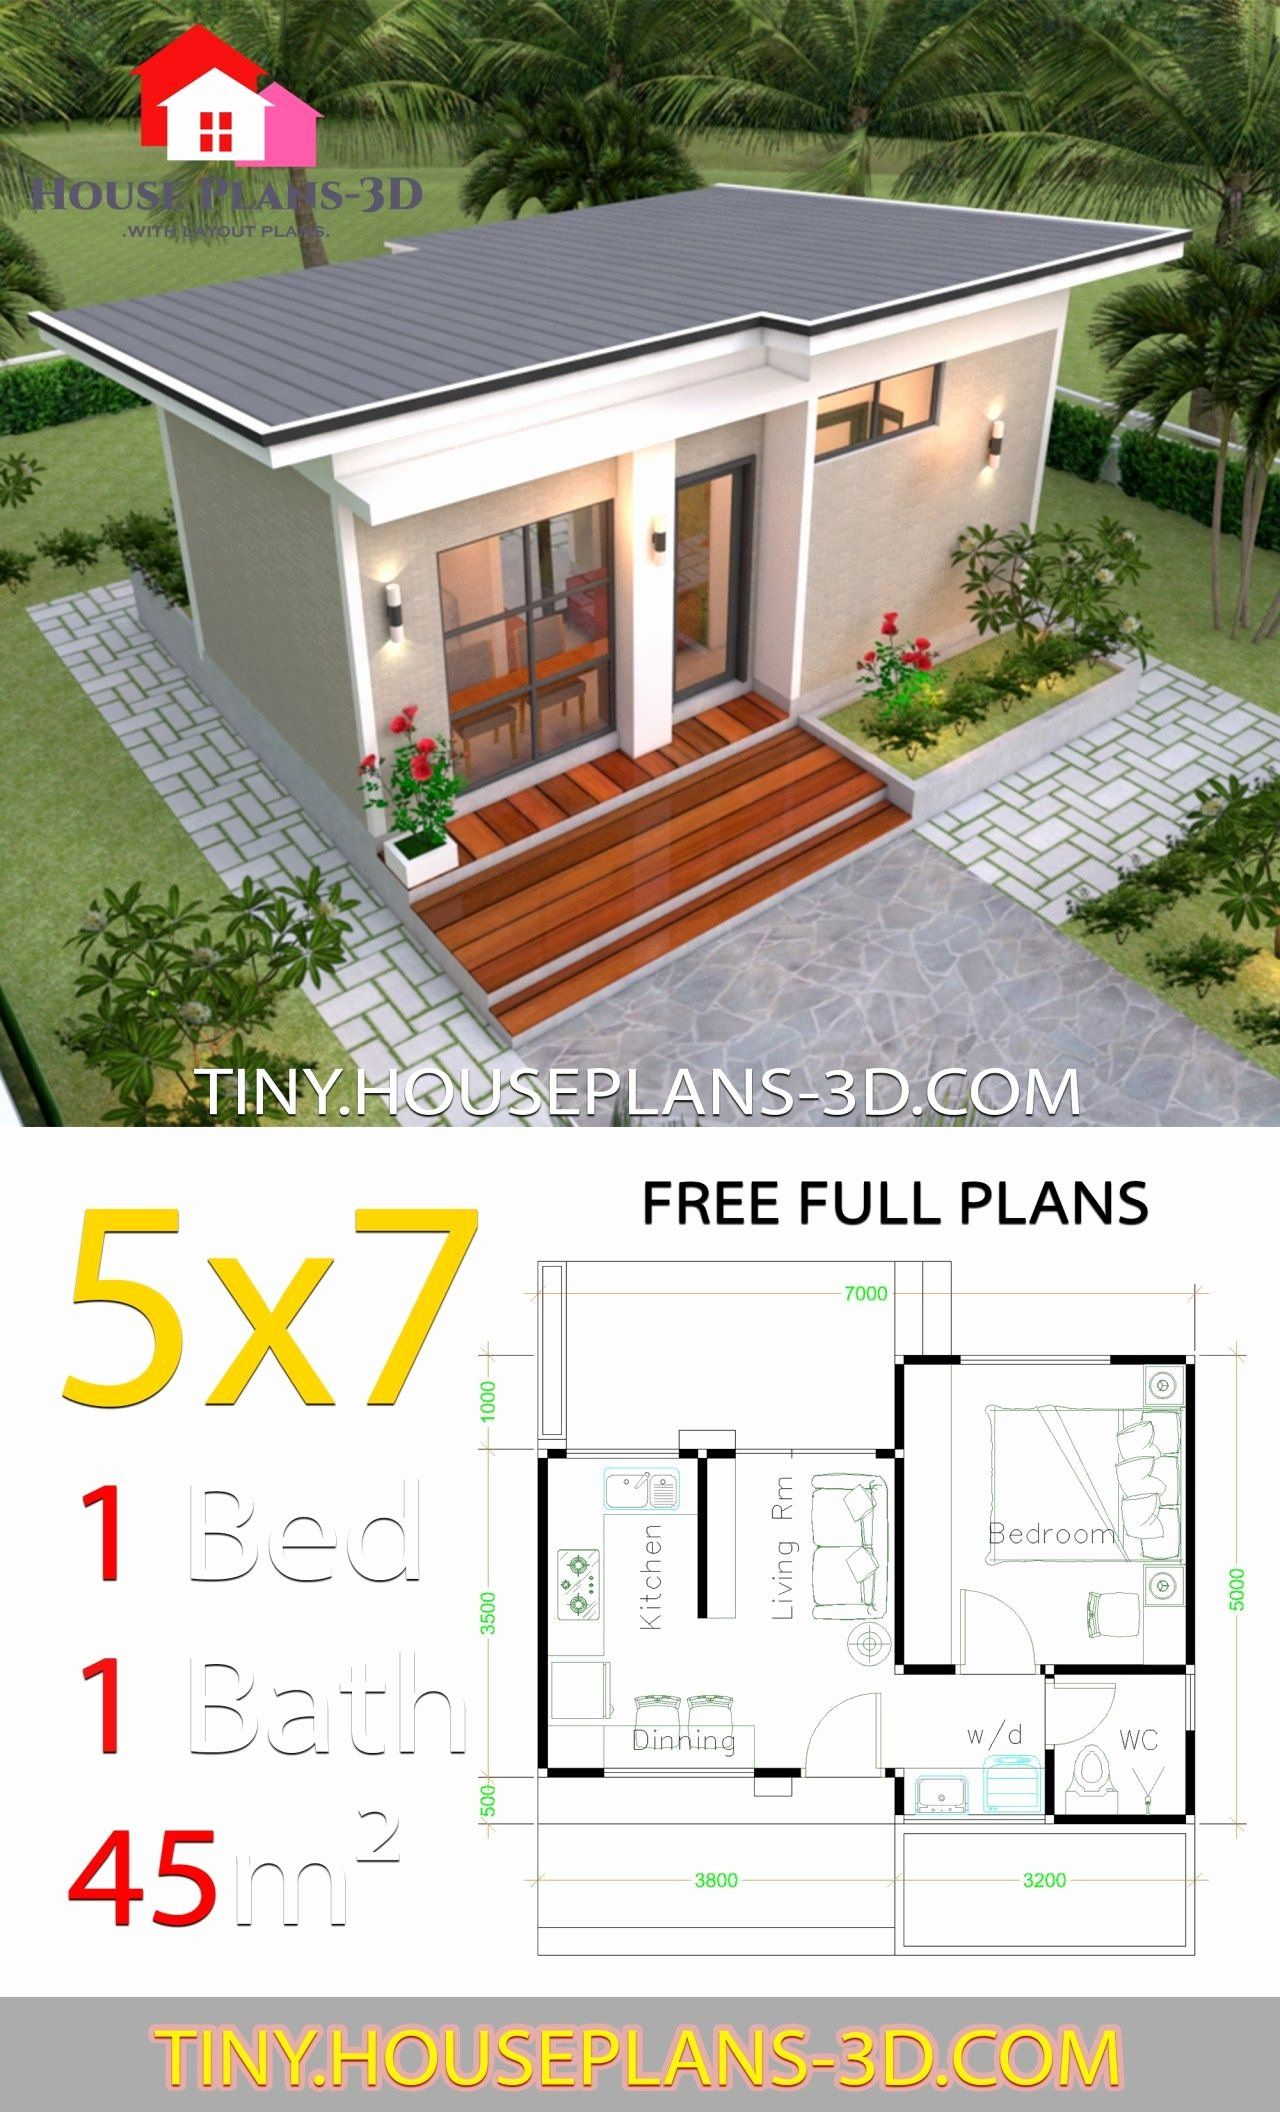 Small One Bedroom House Plans New Home Design Plan 11x8m With E Bedroom Homify Best Small House Layout Small House Design Plans Simple House Design